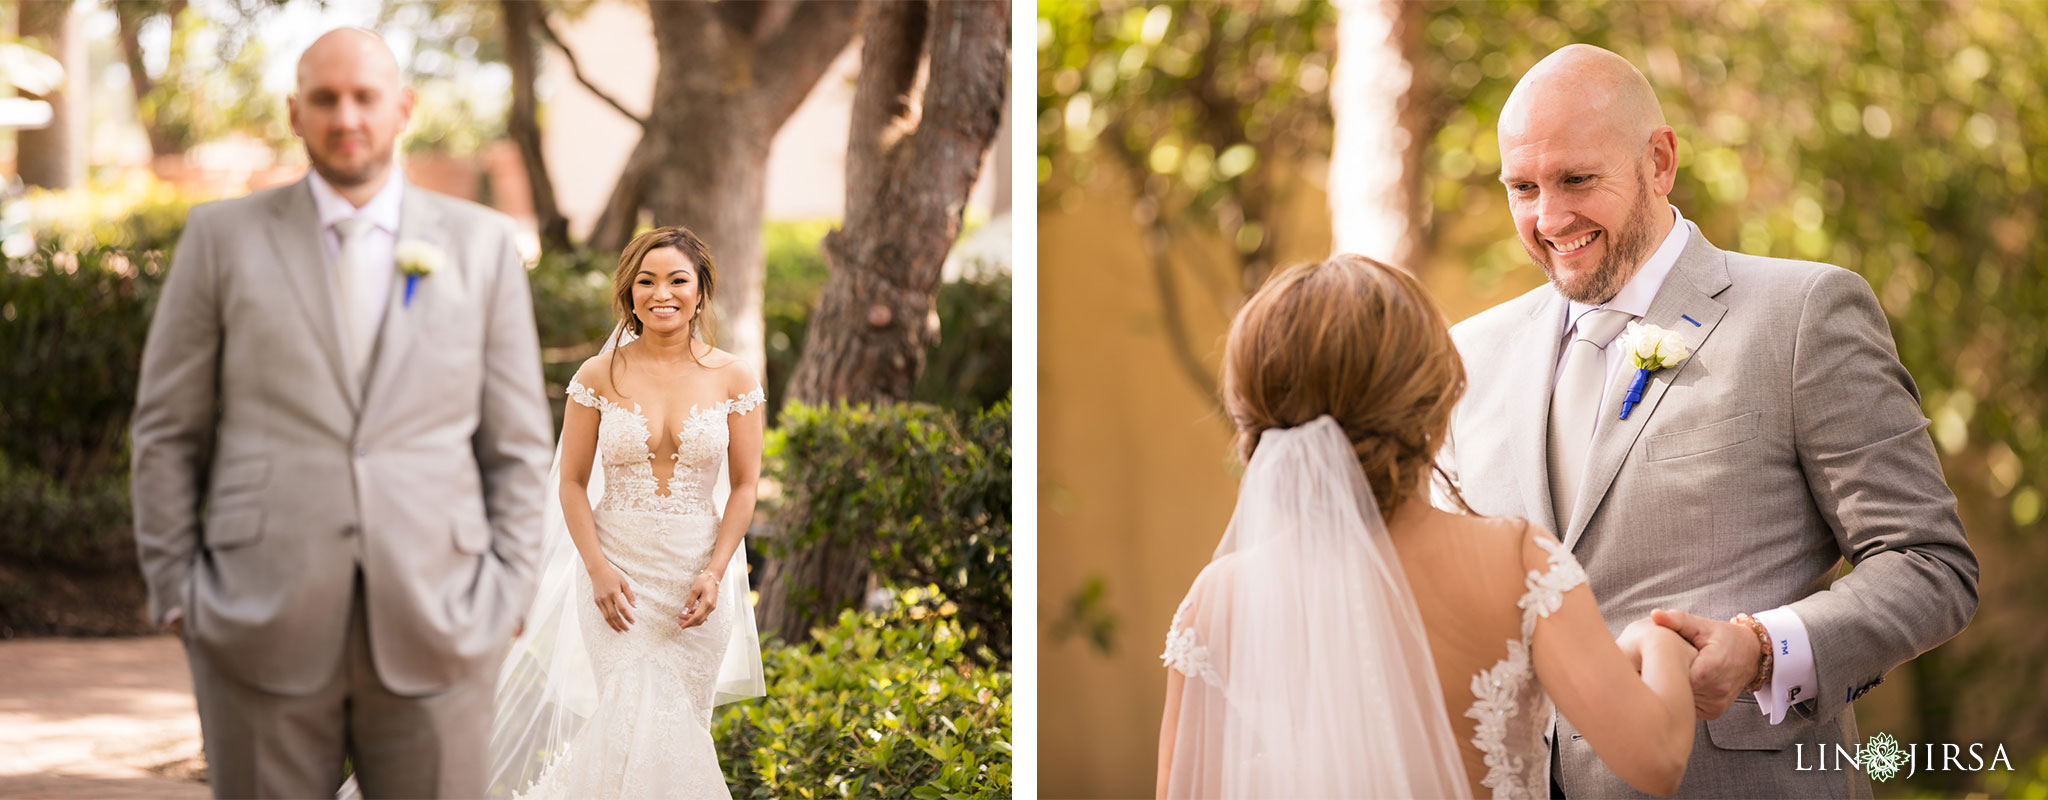 12 pelican hill resort orange county first look wedding photography